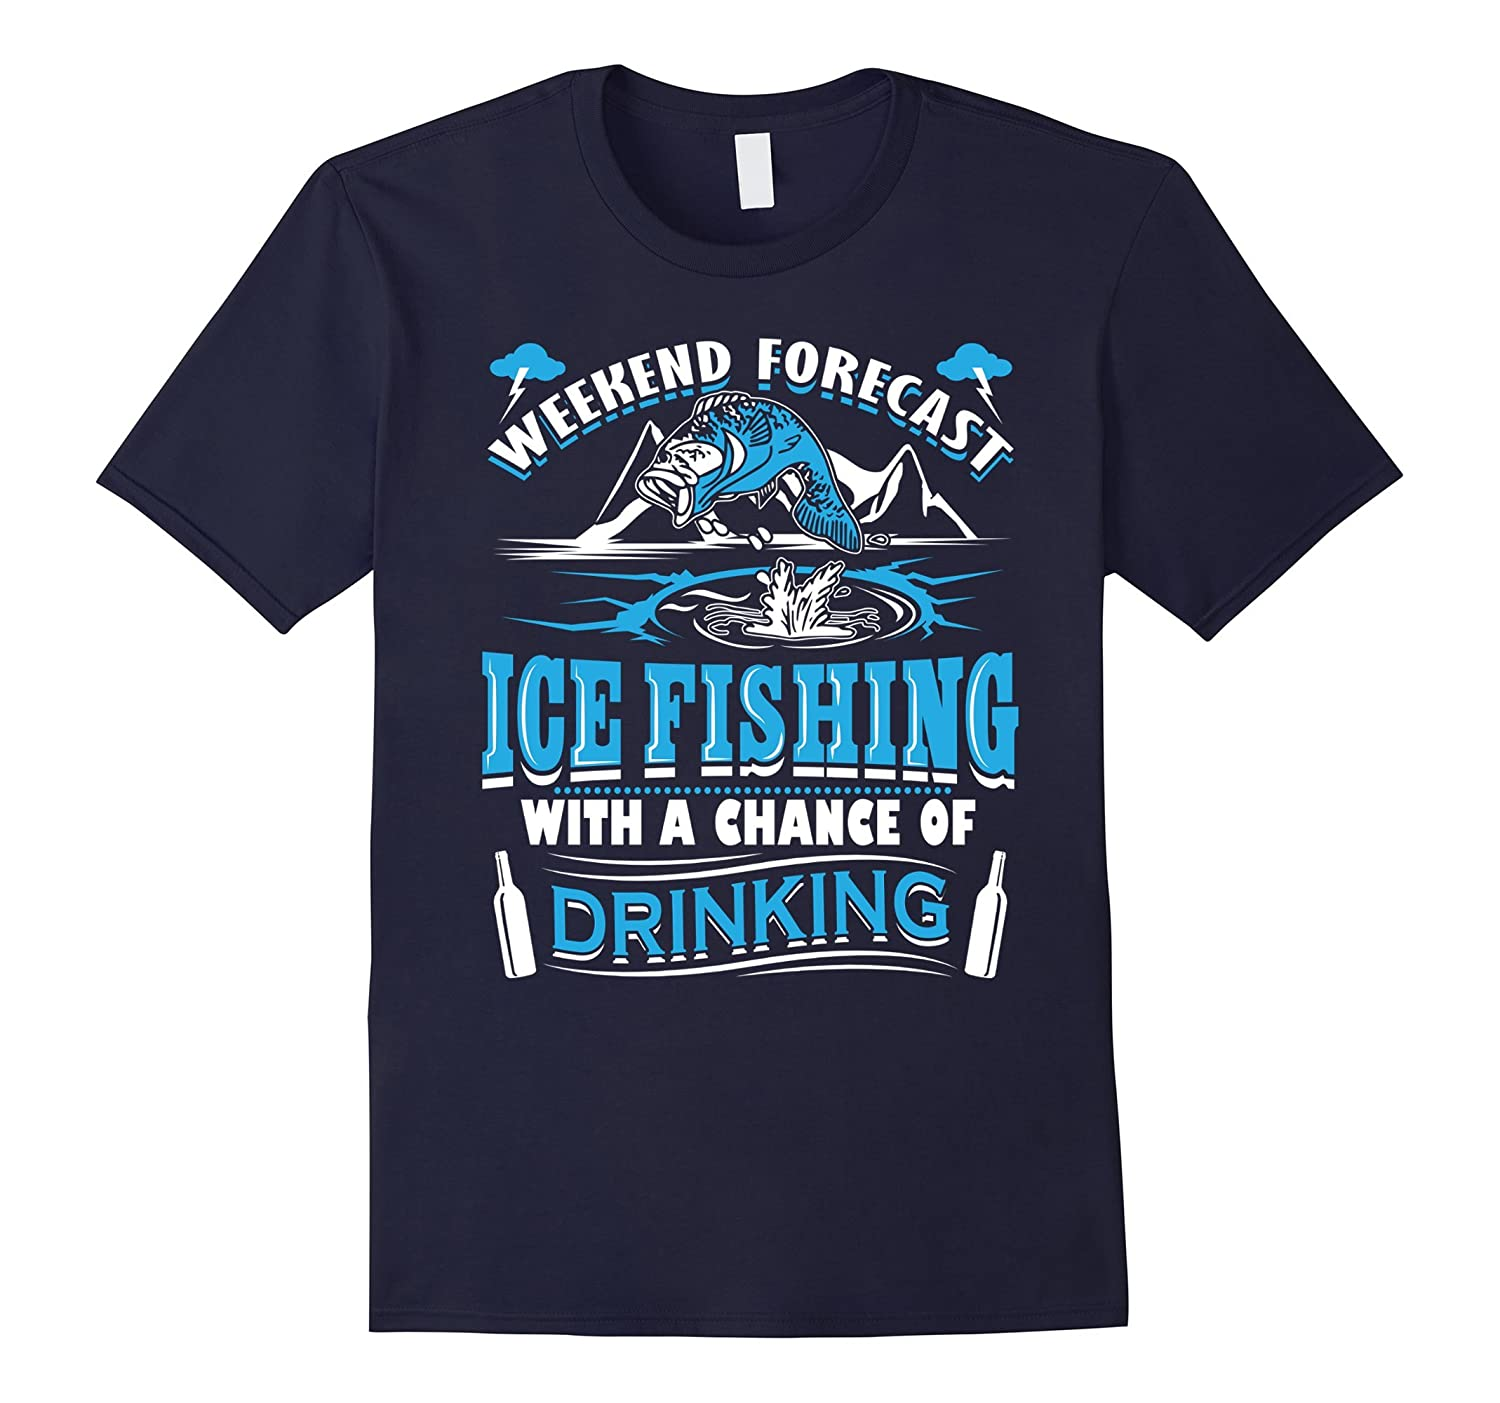 Weekend forecast ice fishing funny ice fishing shirts for Ice fishing apparel